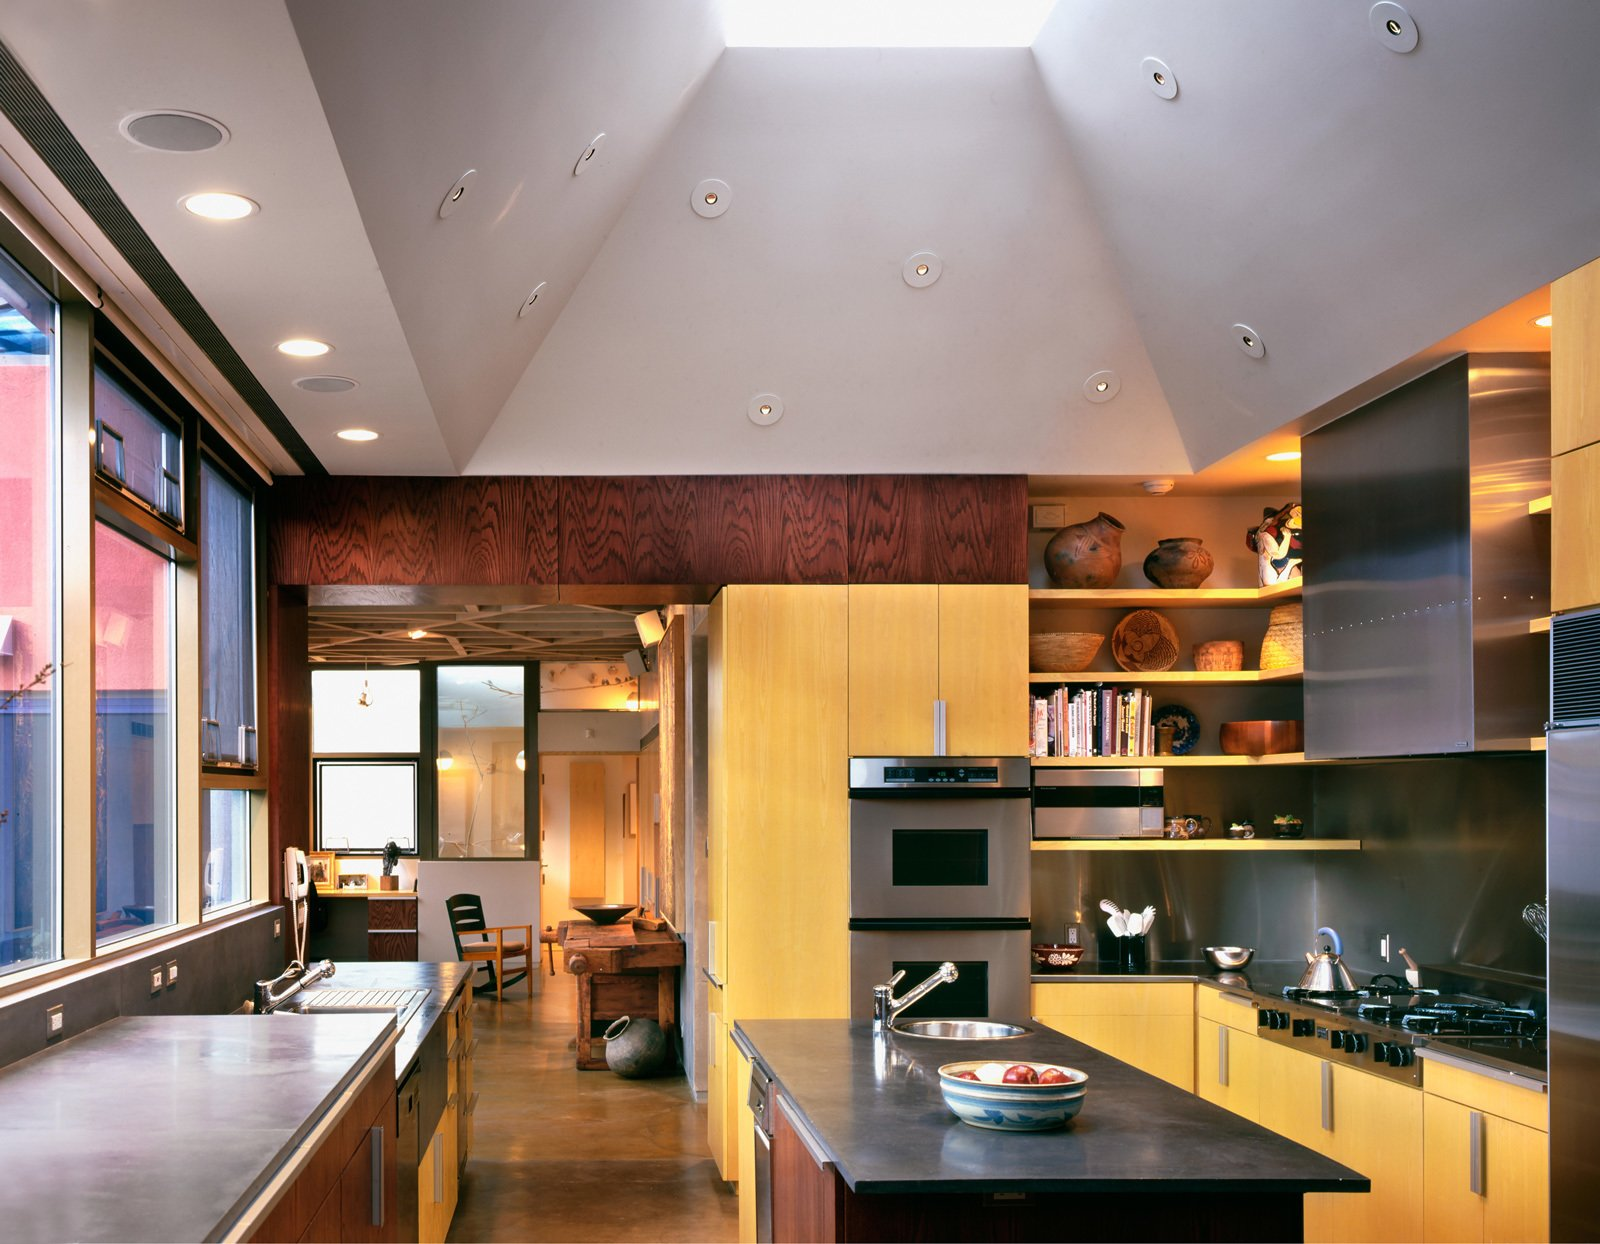 The kitchen features poured concrete counters, double convection ovens, and dual warming drawers and dishwashers.